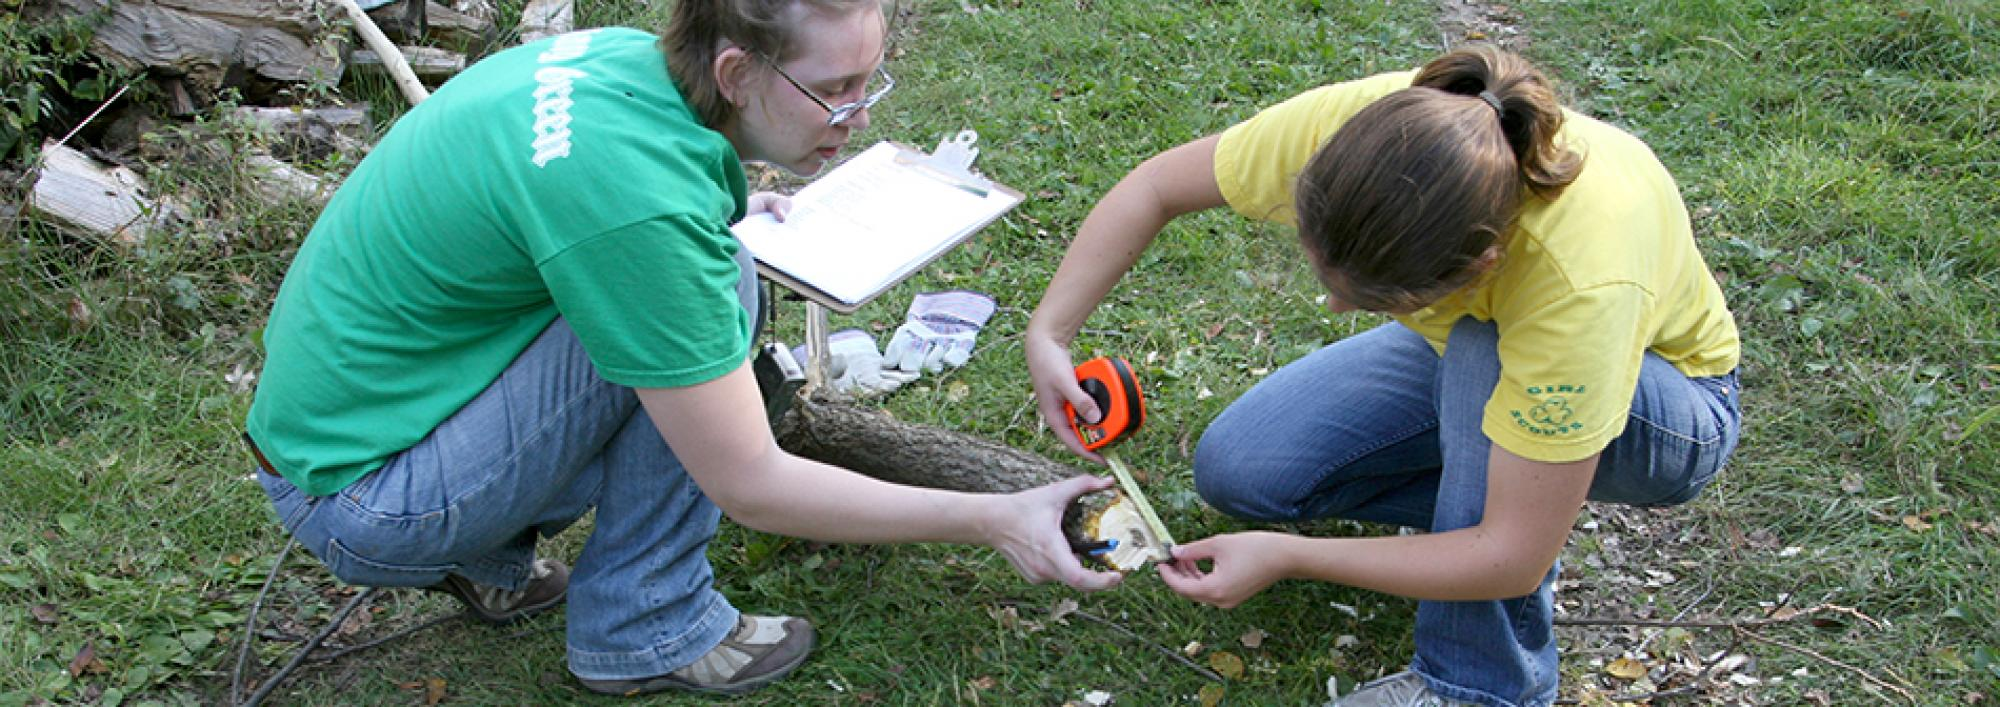 Students measure the diameter of a tree branch